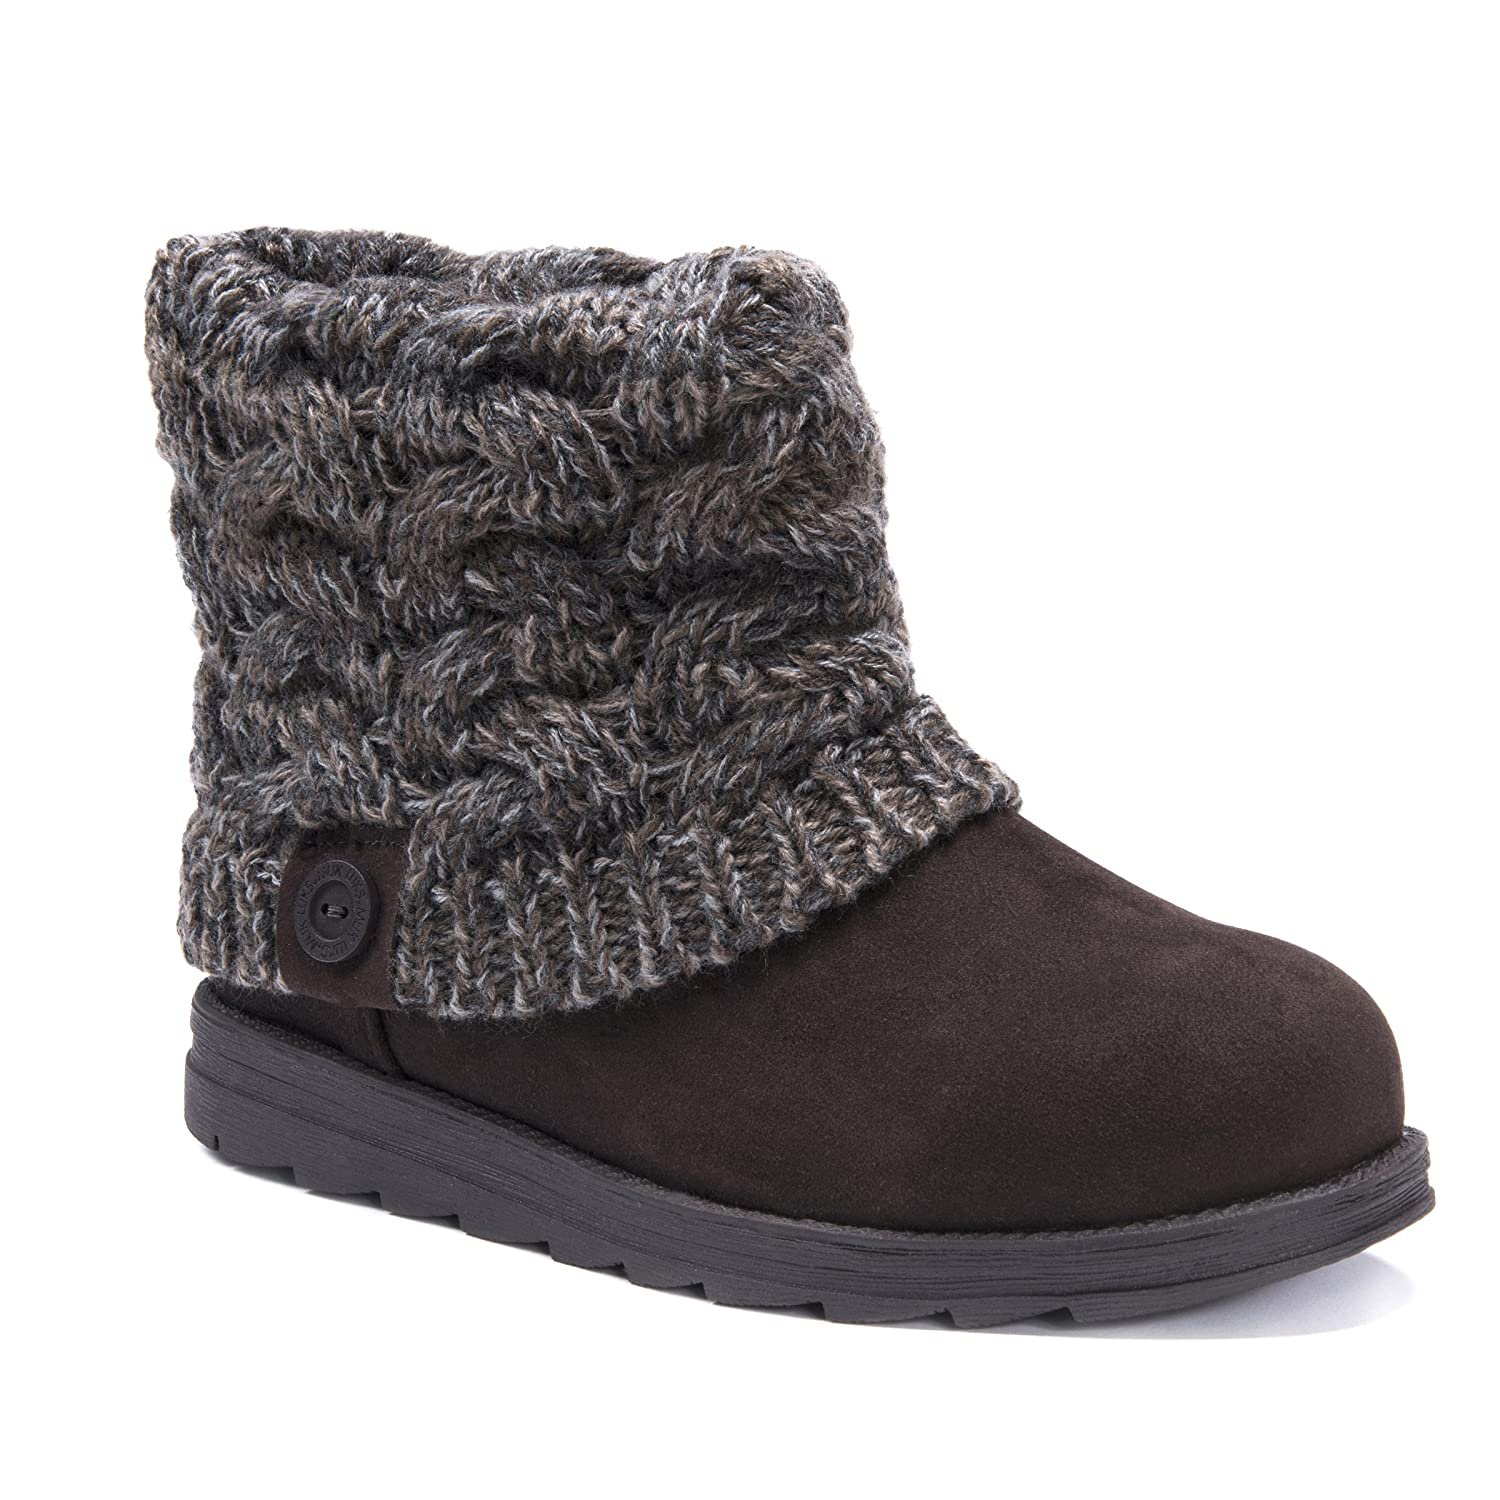 MUK LUKS Women's Patti Boots Fashion